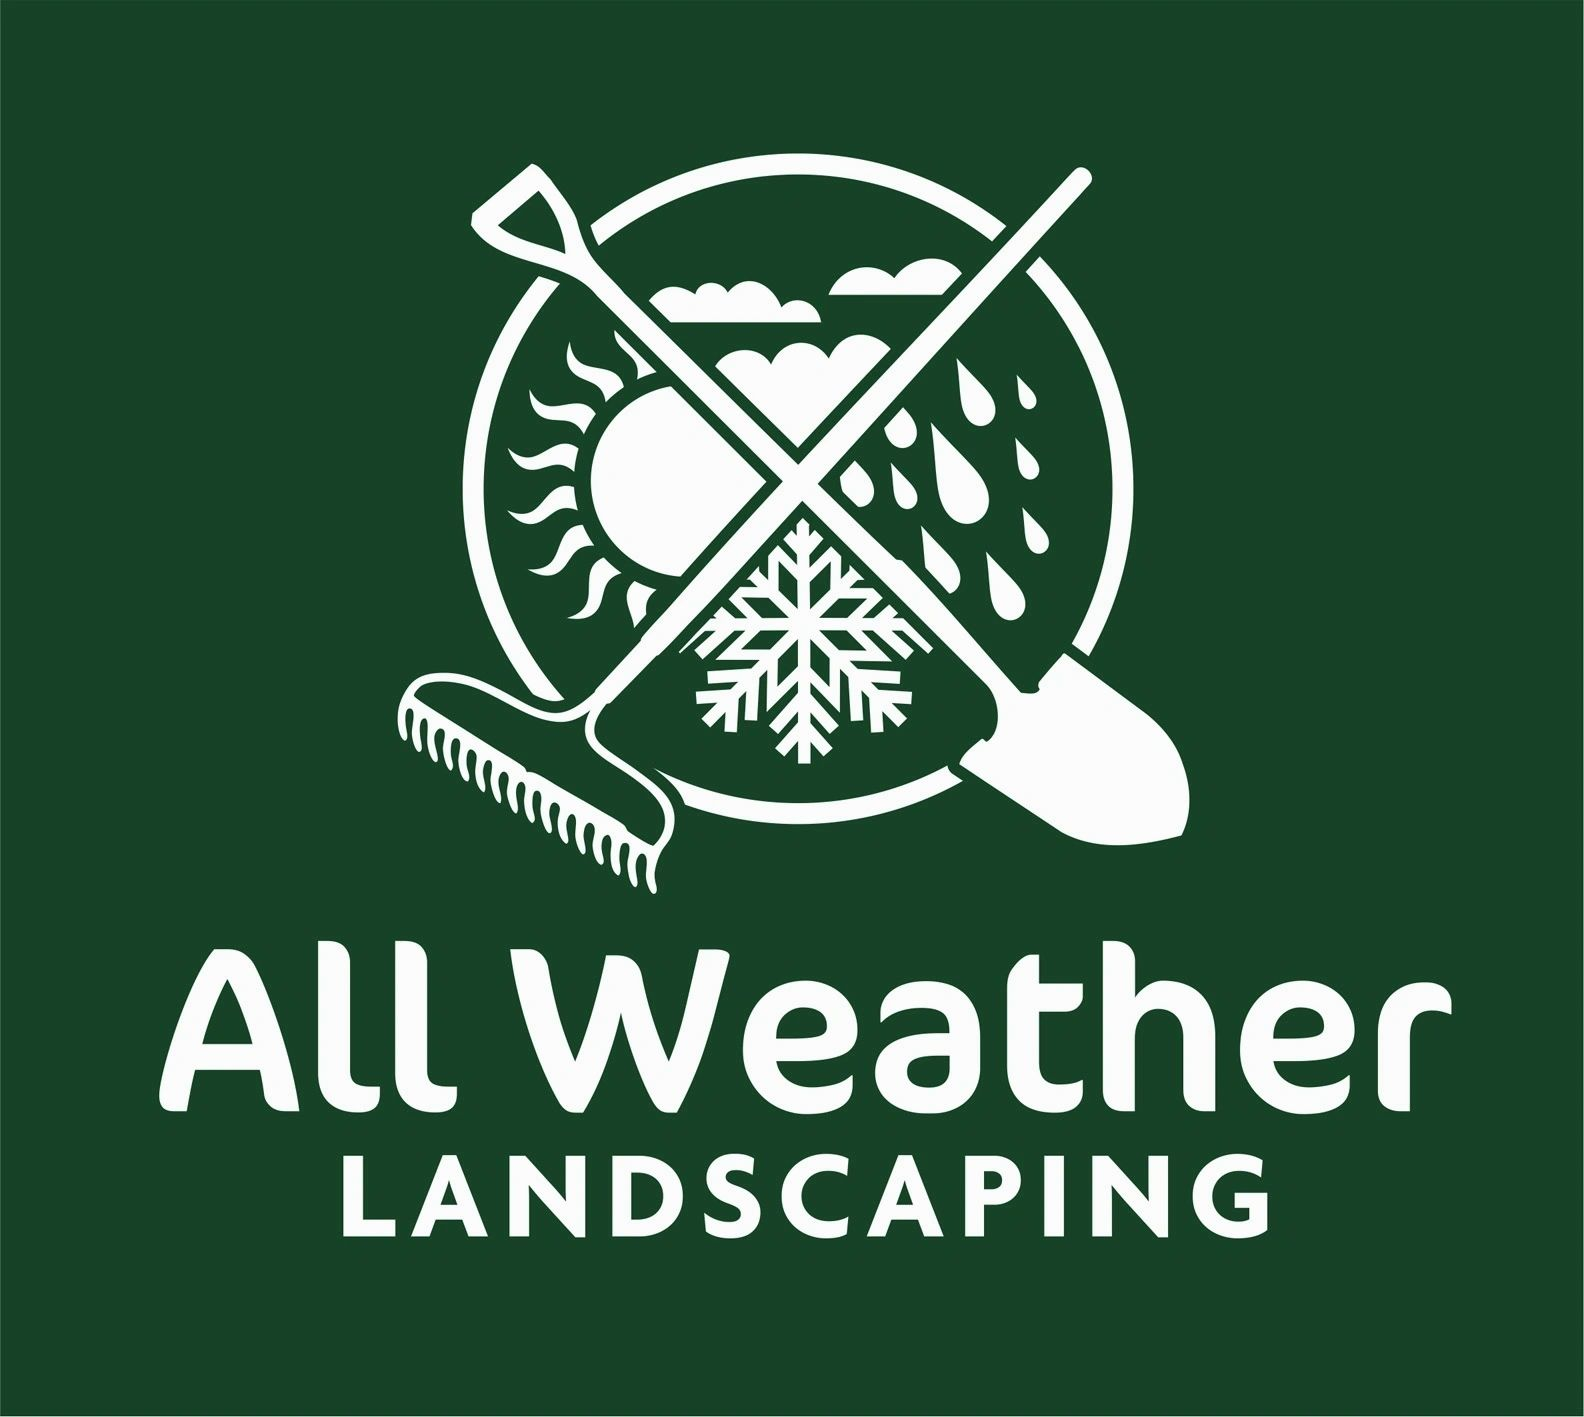 All Weather Landscaping logo